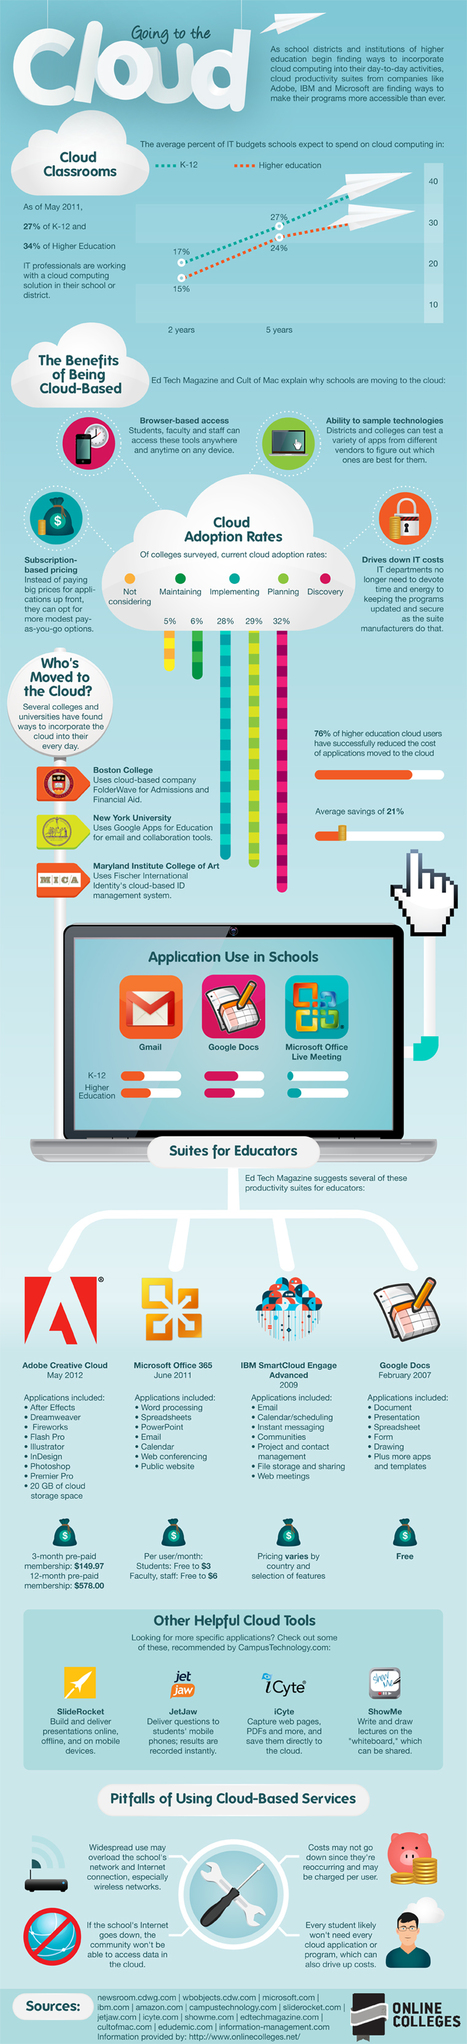 Tracking Cloud Adoption in Schools [Infographic] | iEduc | Scoop.it